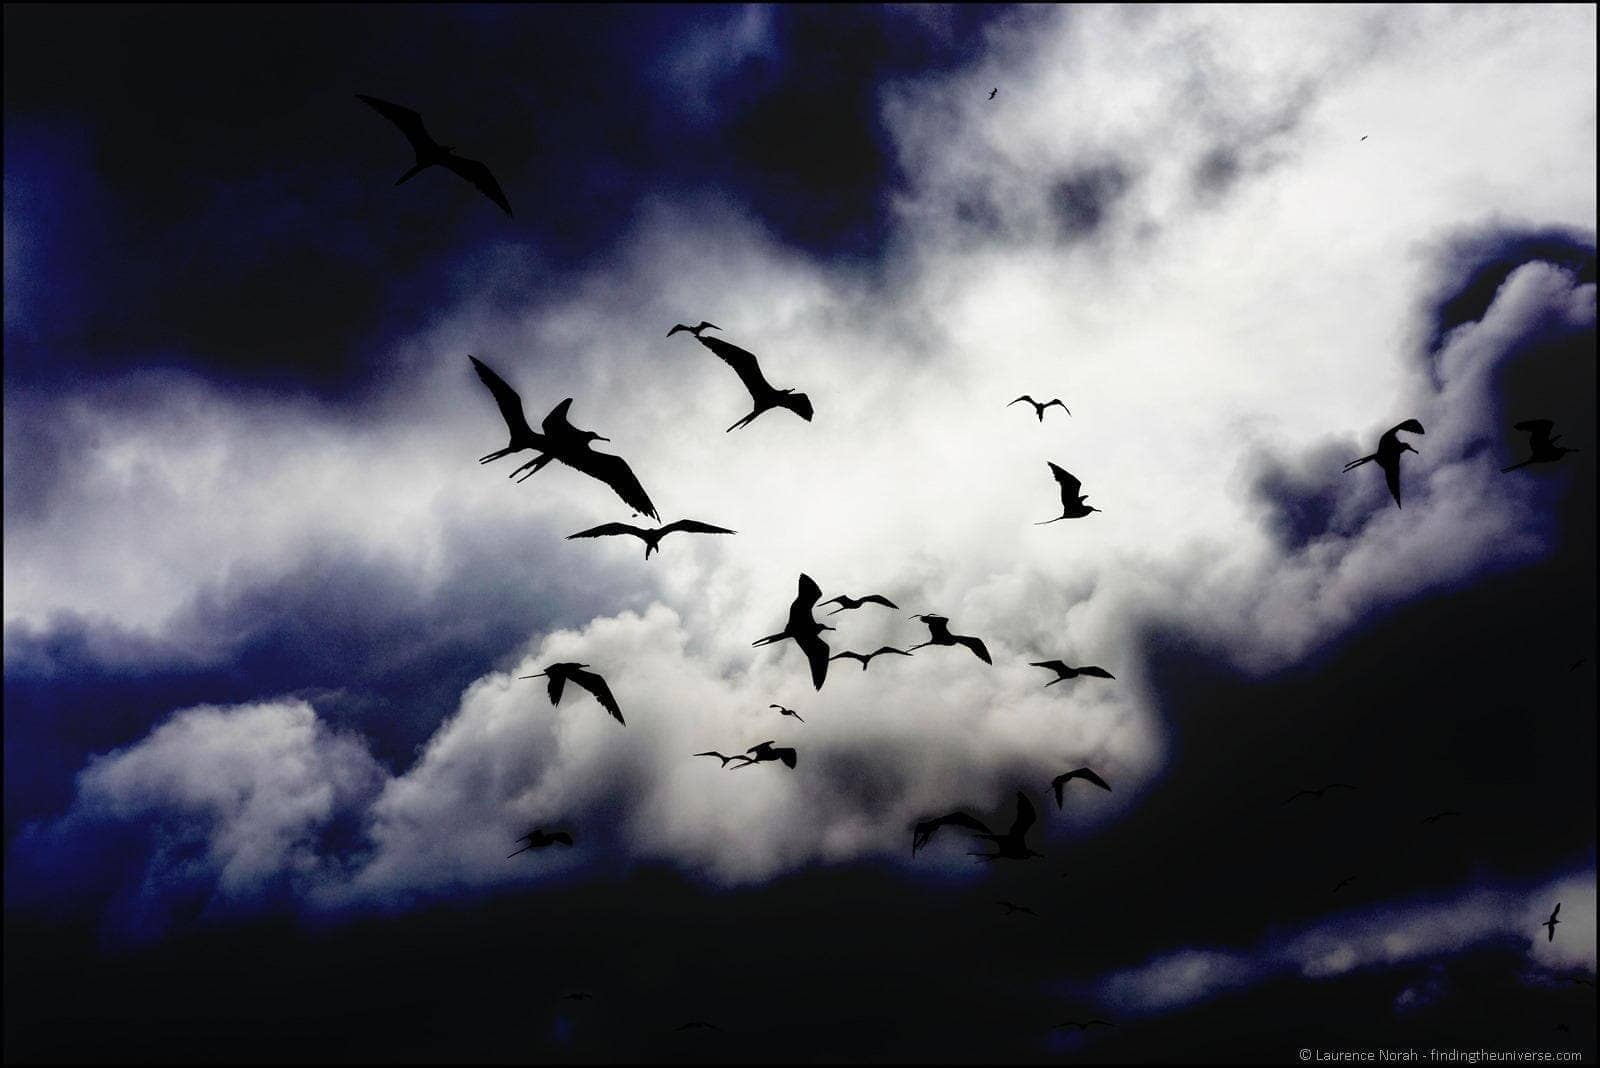 Frigate birds against clouds edit 3